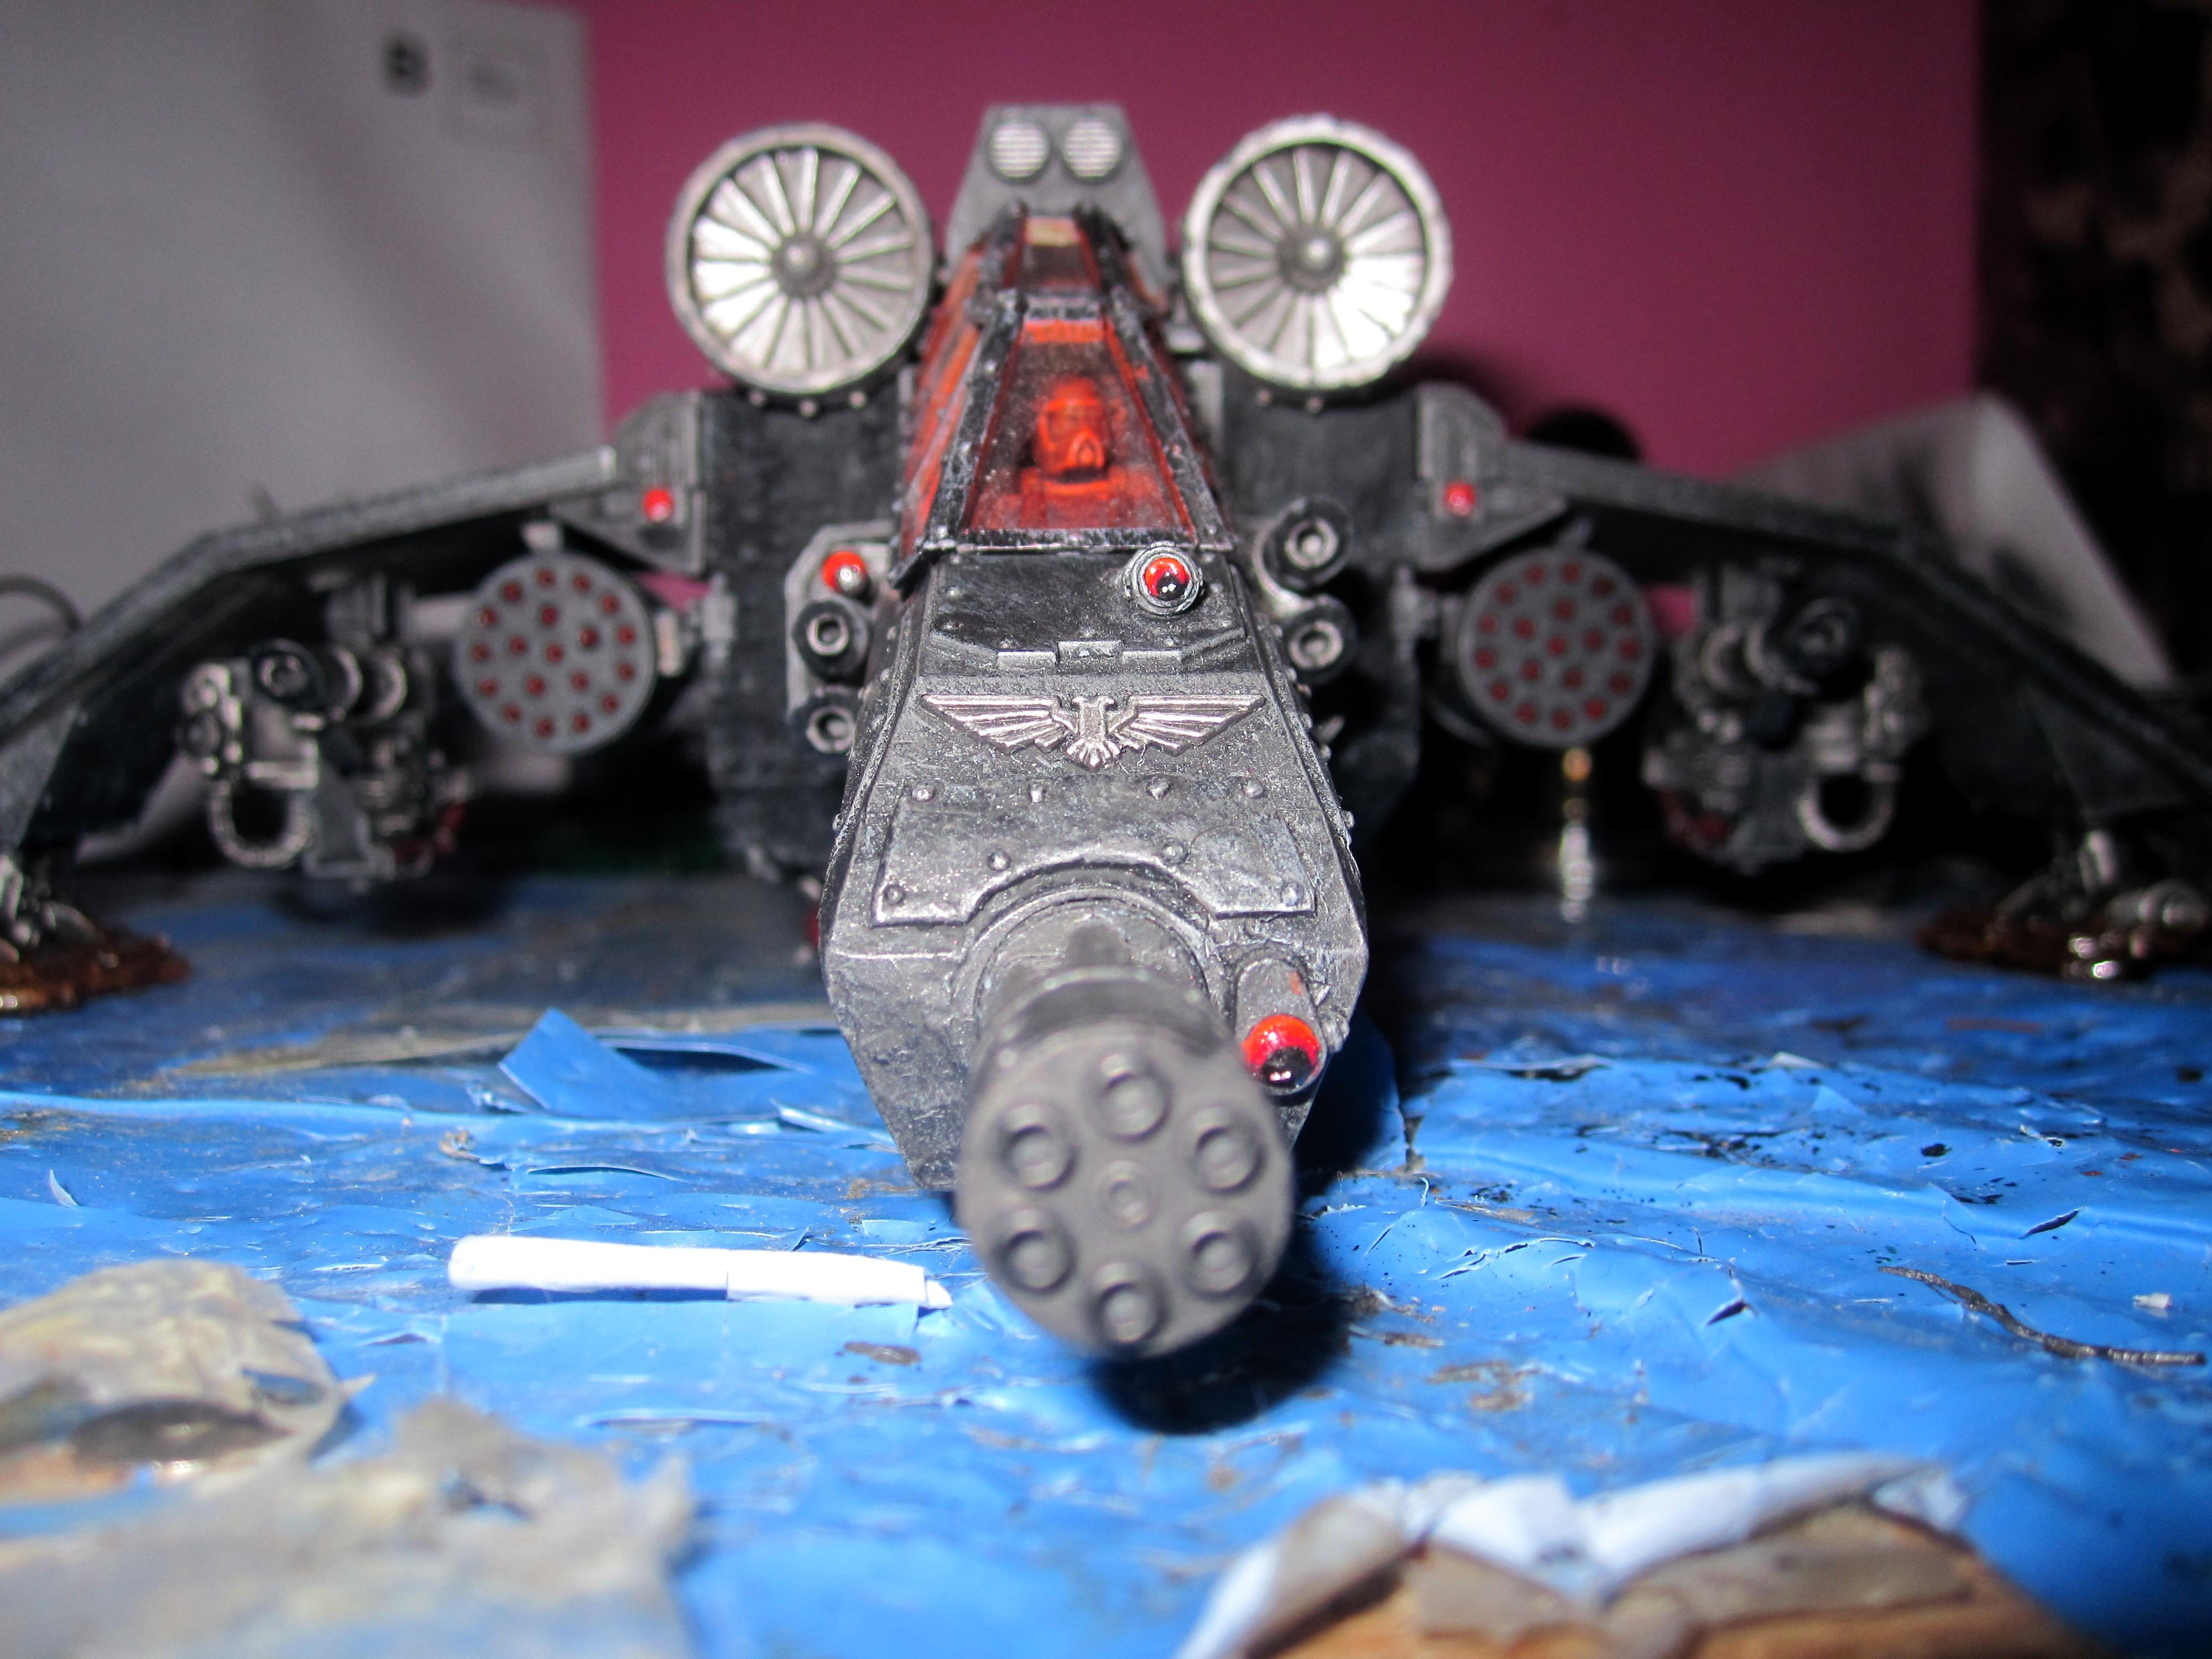 Imperial Guard, Object Source Lighting, Punisher Cannon, Valkyrie, Vendetta